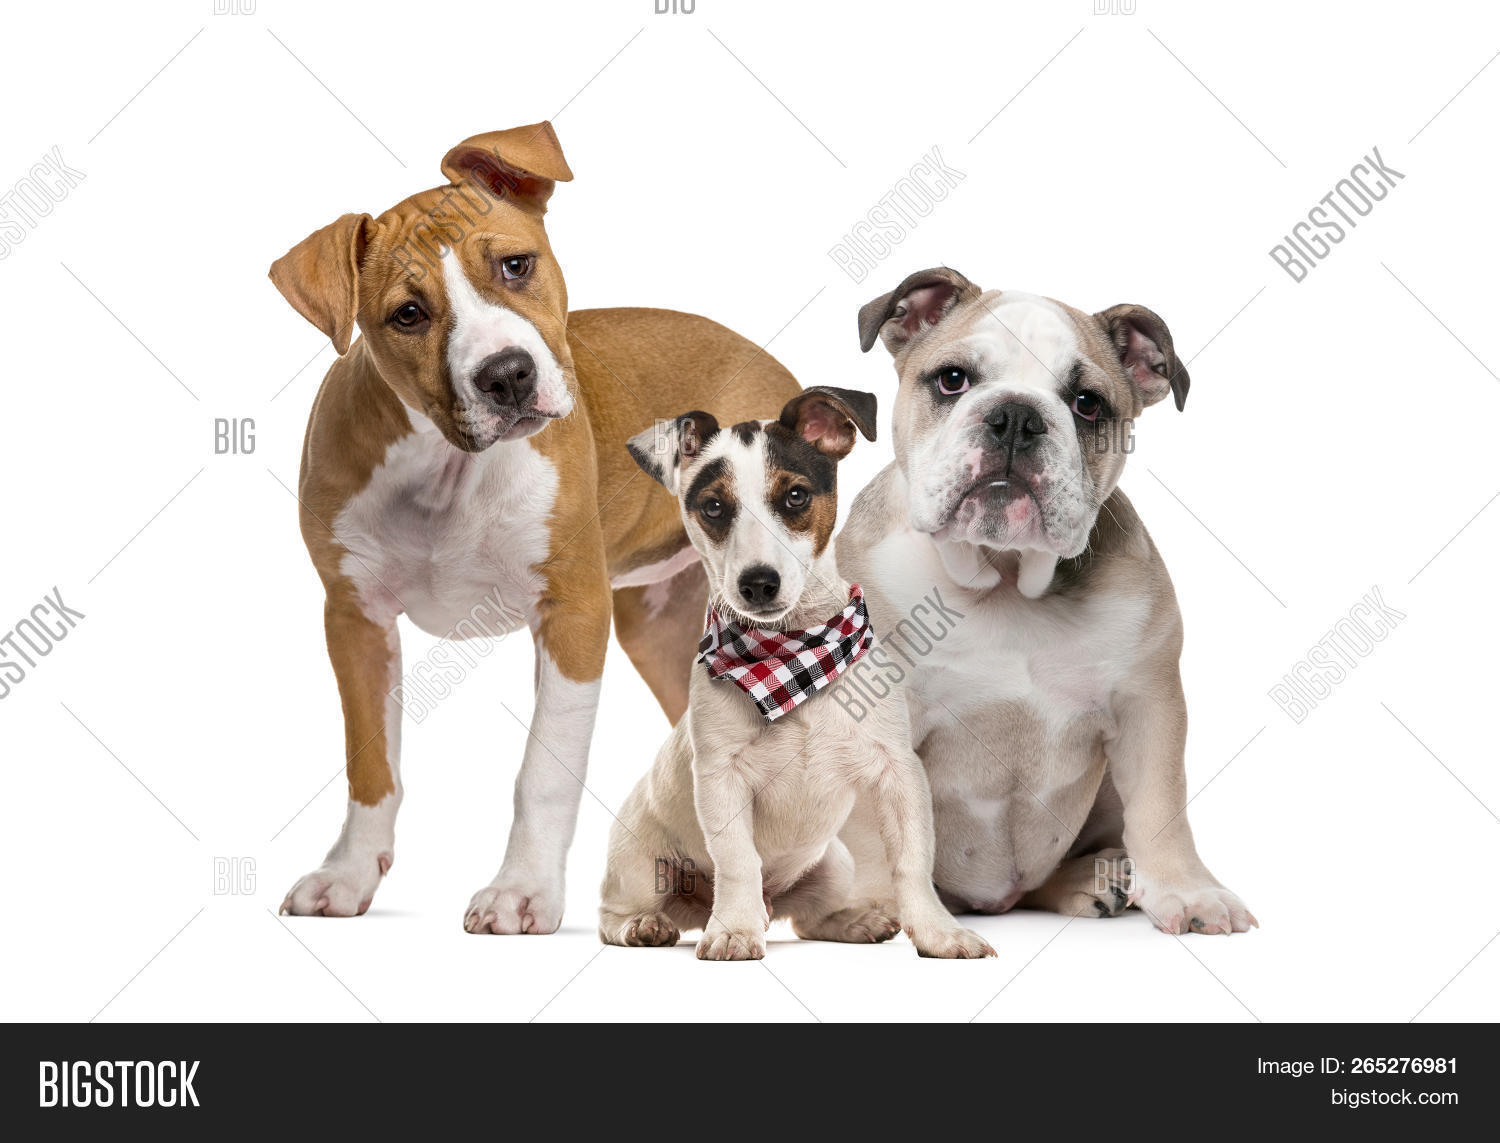 American Staffordshire Terrier puppy, English Bulldog puppy, Jack Russell Terrier puppy with checked scarf, in front of white background